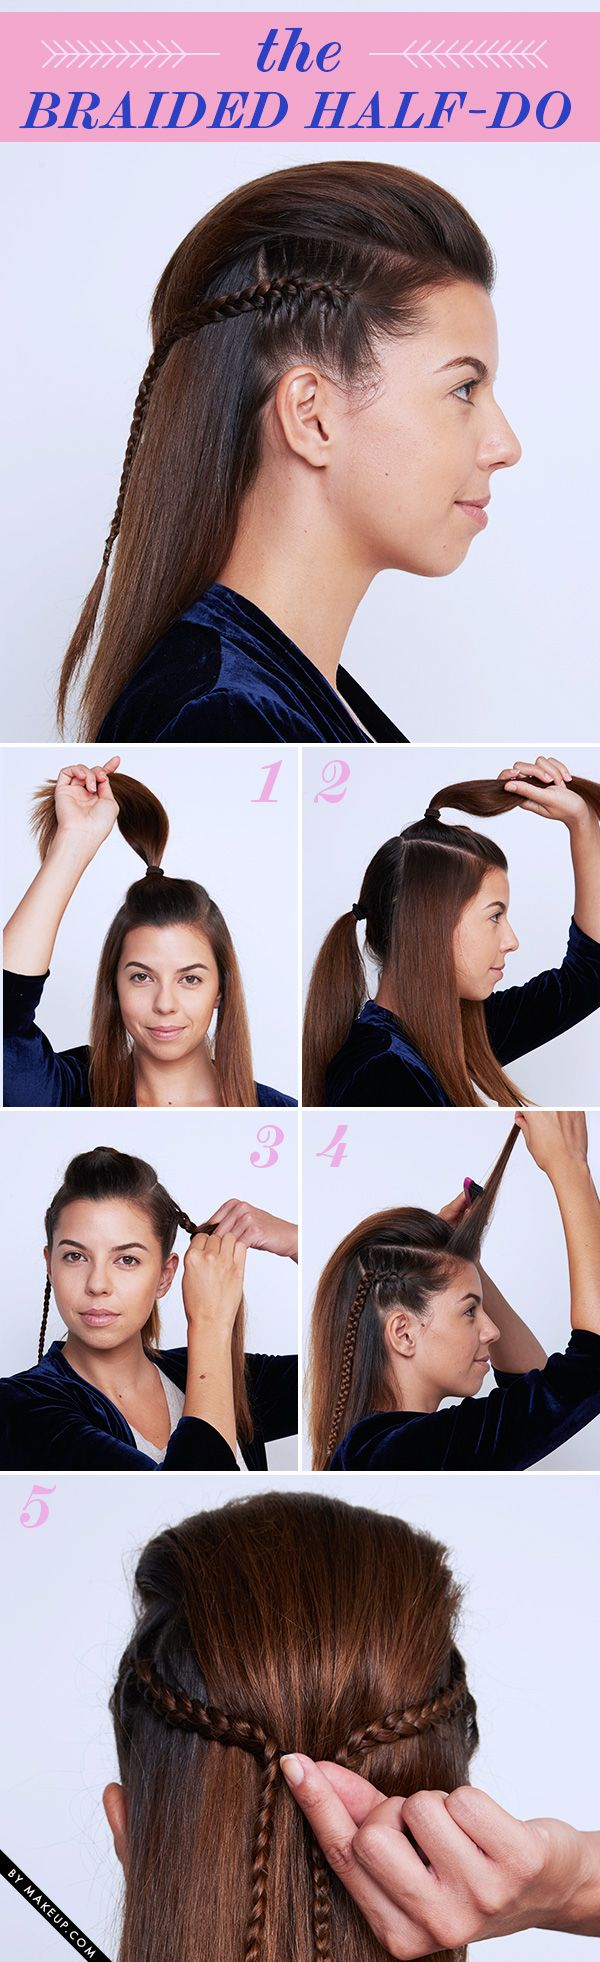 Braided updos are the best way to add a little attitude to your hairstyle, We have the best braided hair tutorials that are easy to do and look amazing on medium length and longer hair. Follow our simple guide now!